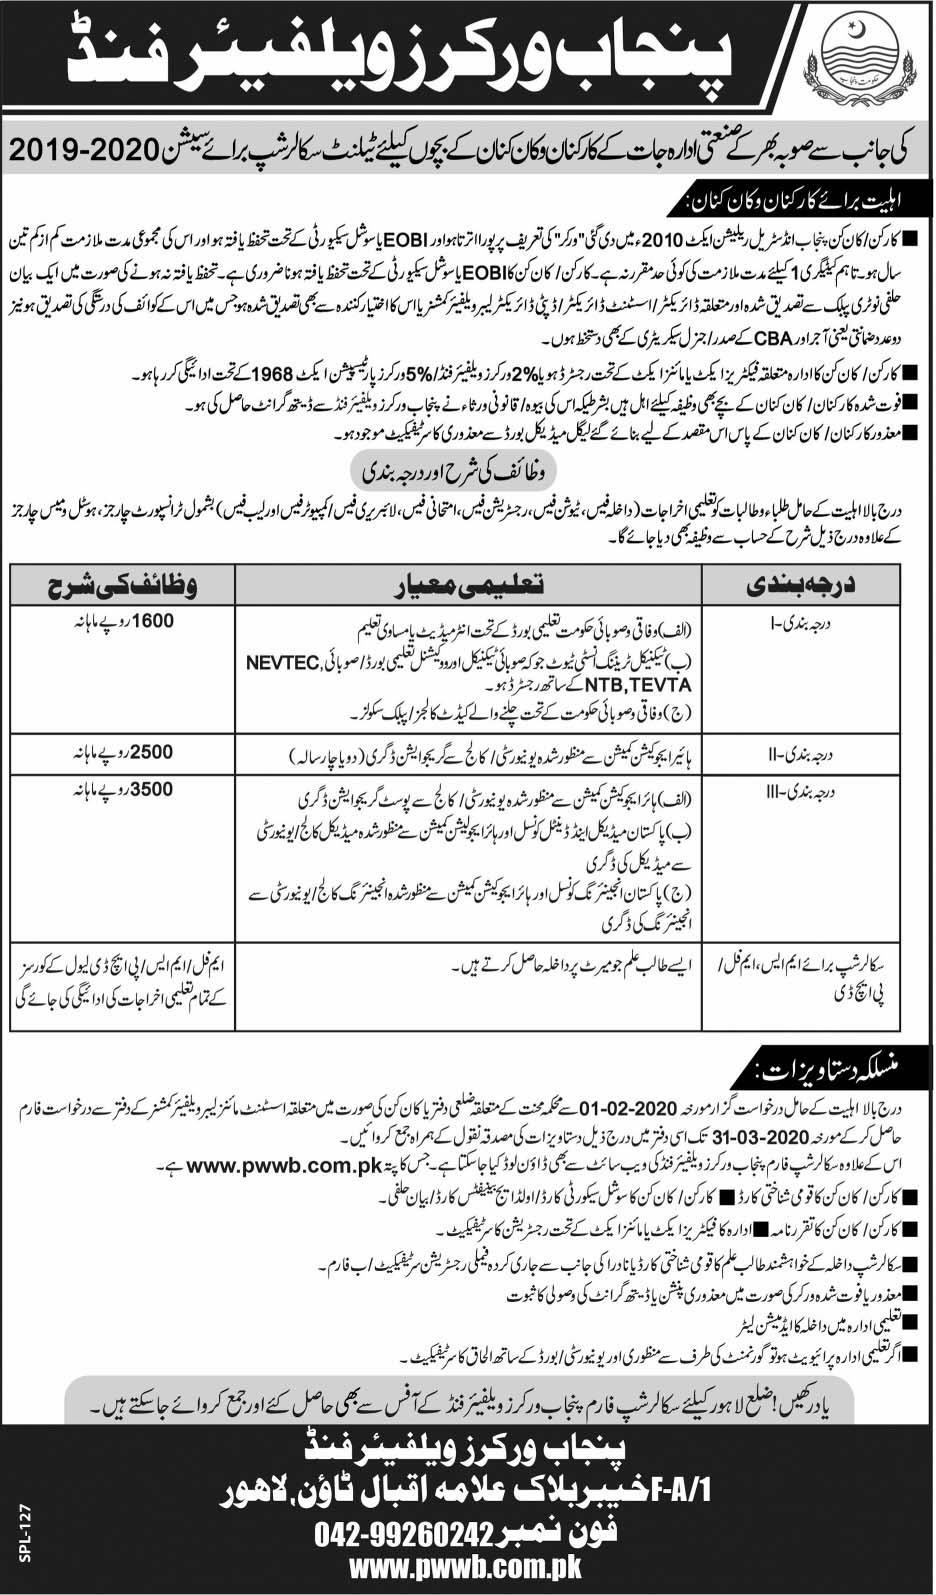 punjab workers welfare board scholarship form